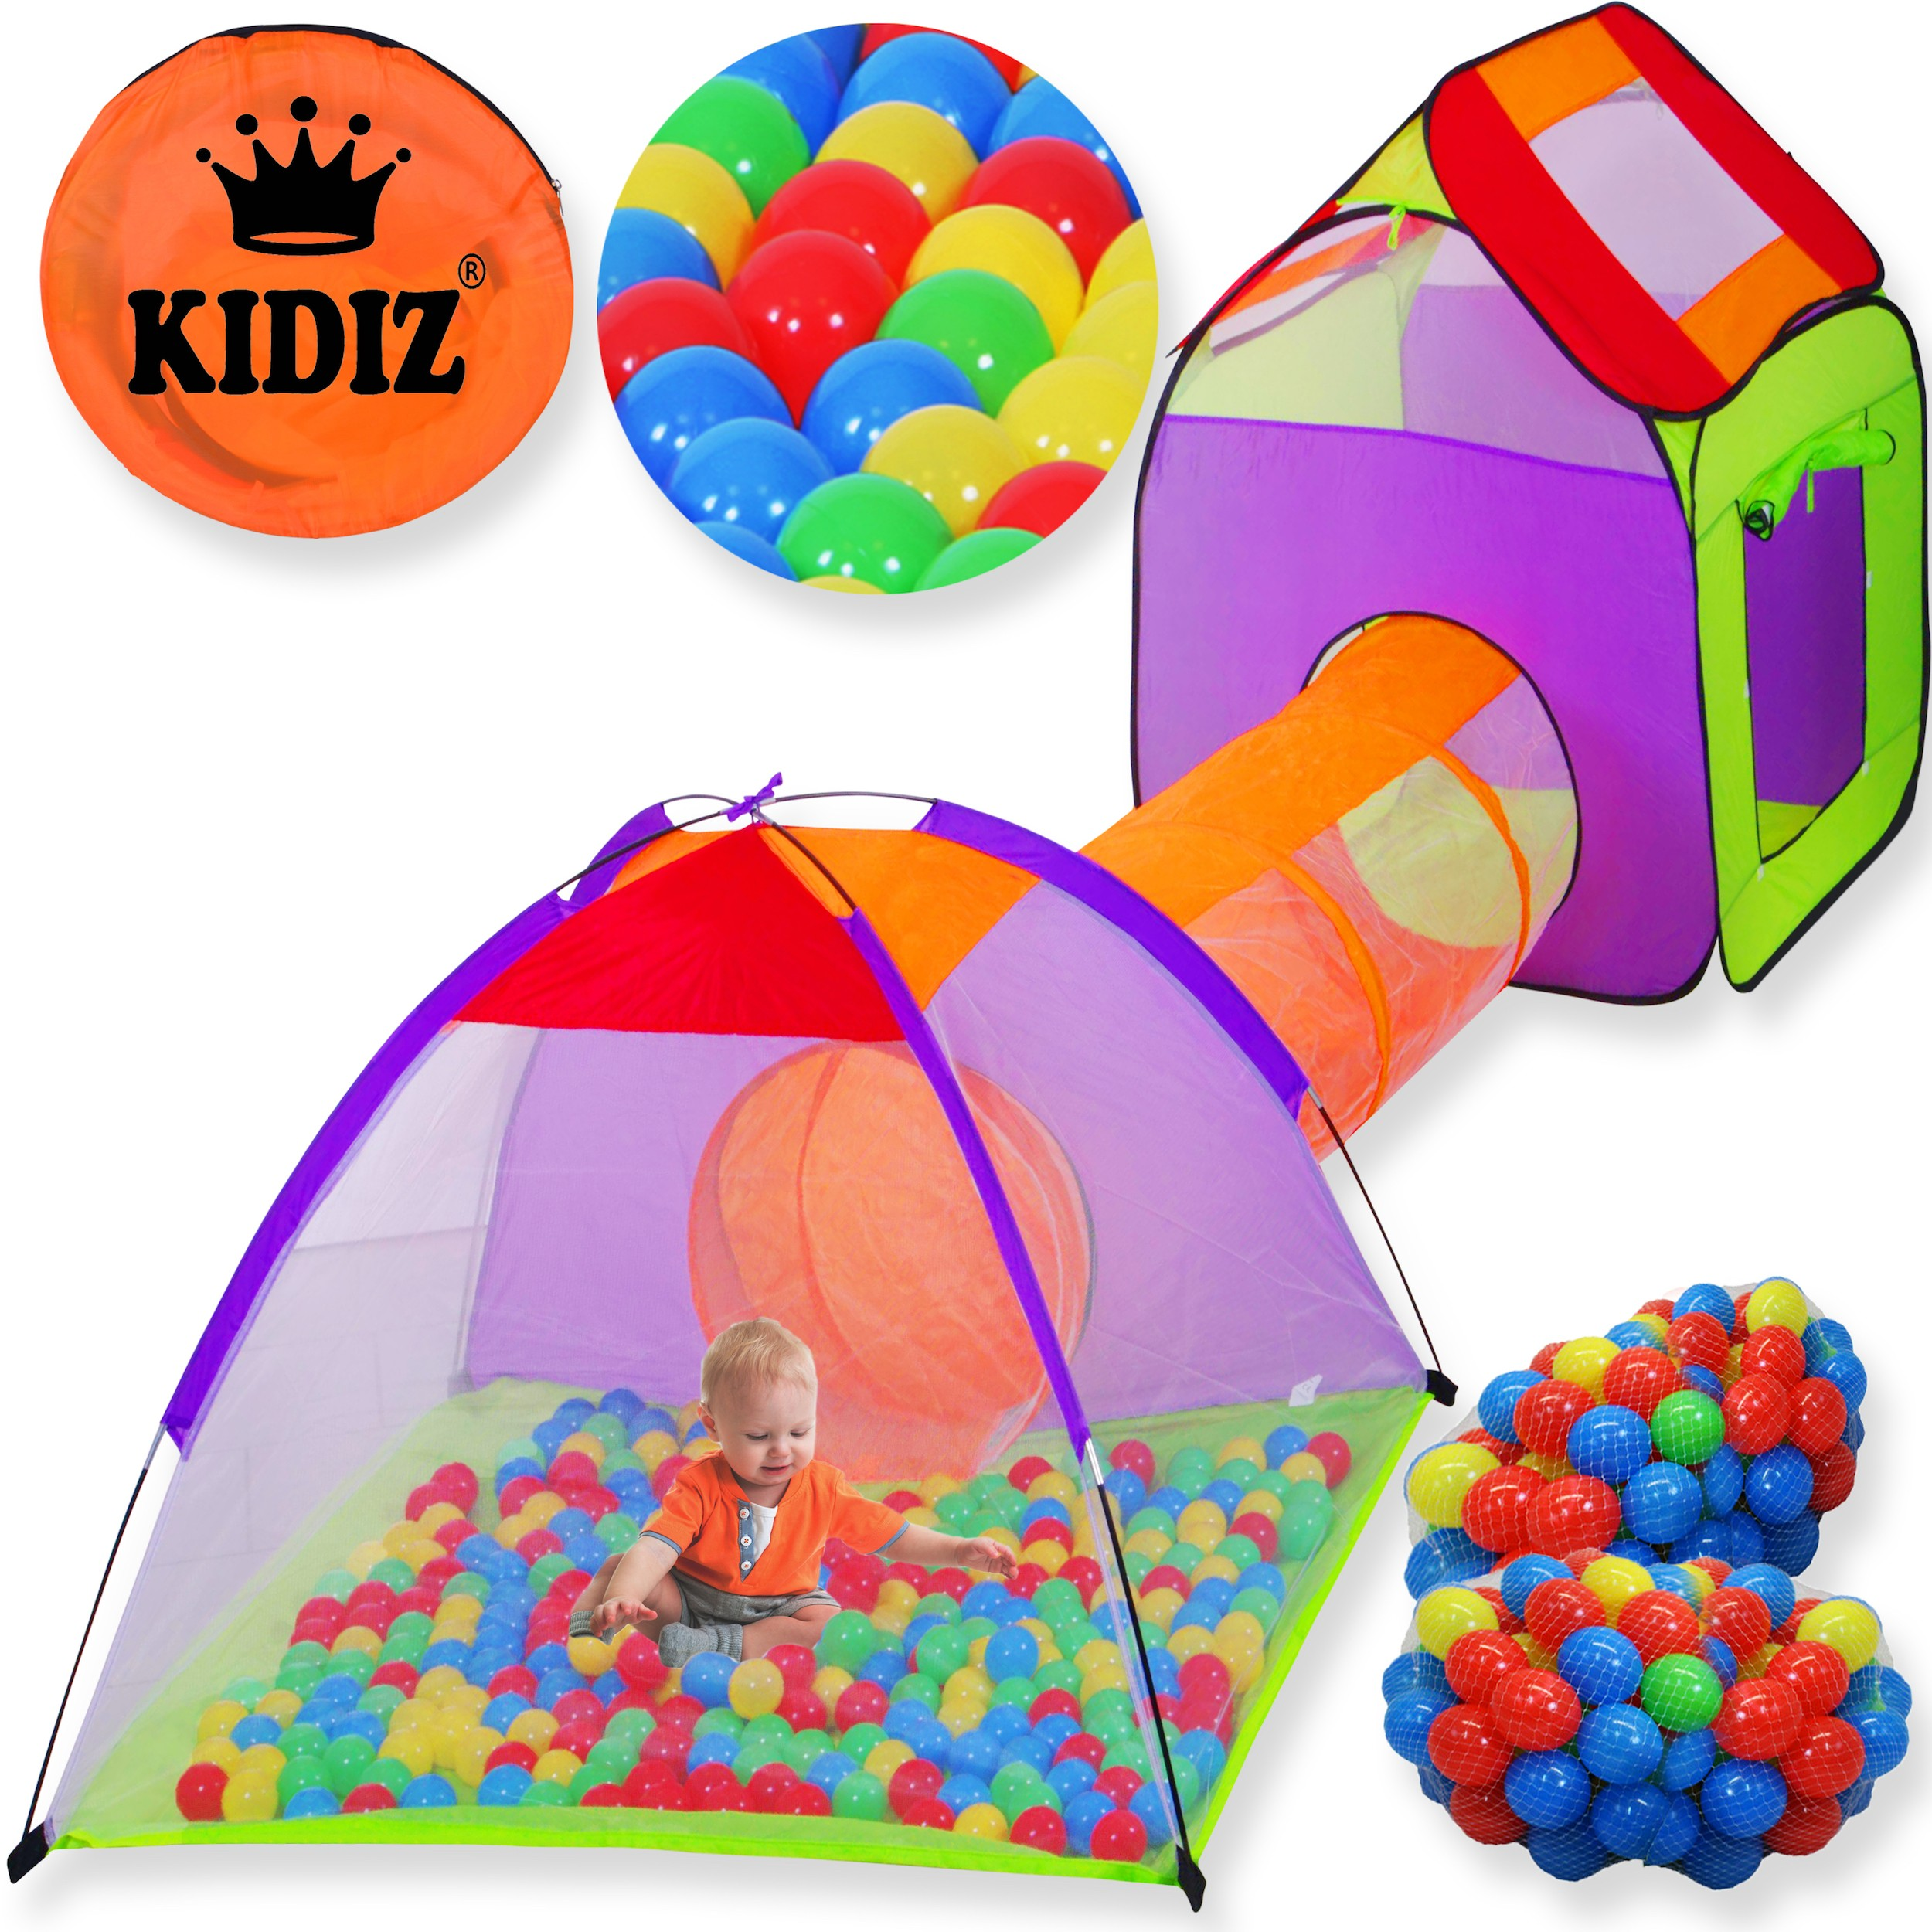 kidiz spielzelt tunnel 200 b lle kinderzelt b llebad spielhaus babyzelt xxl neu. Black Bedroom Furniture Sets. Home Design Ideas